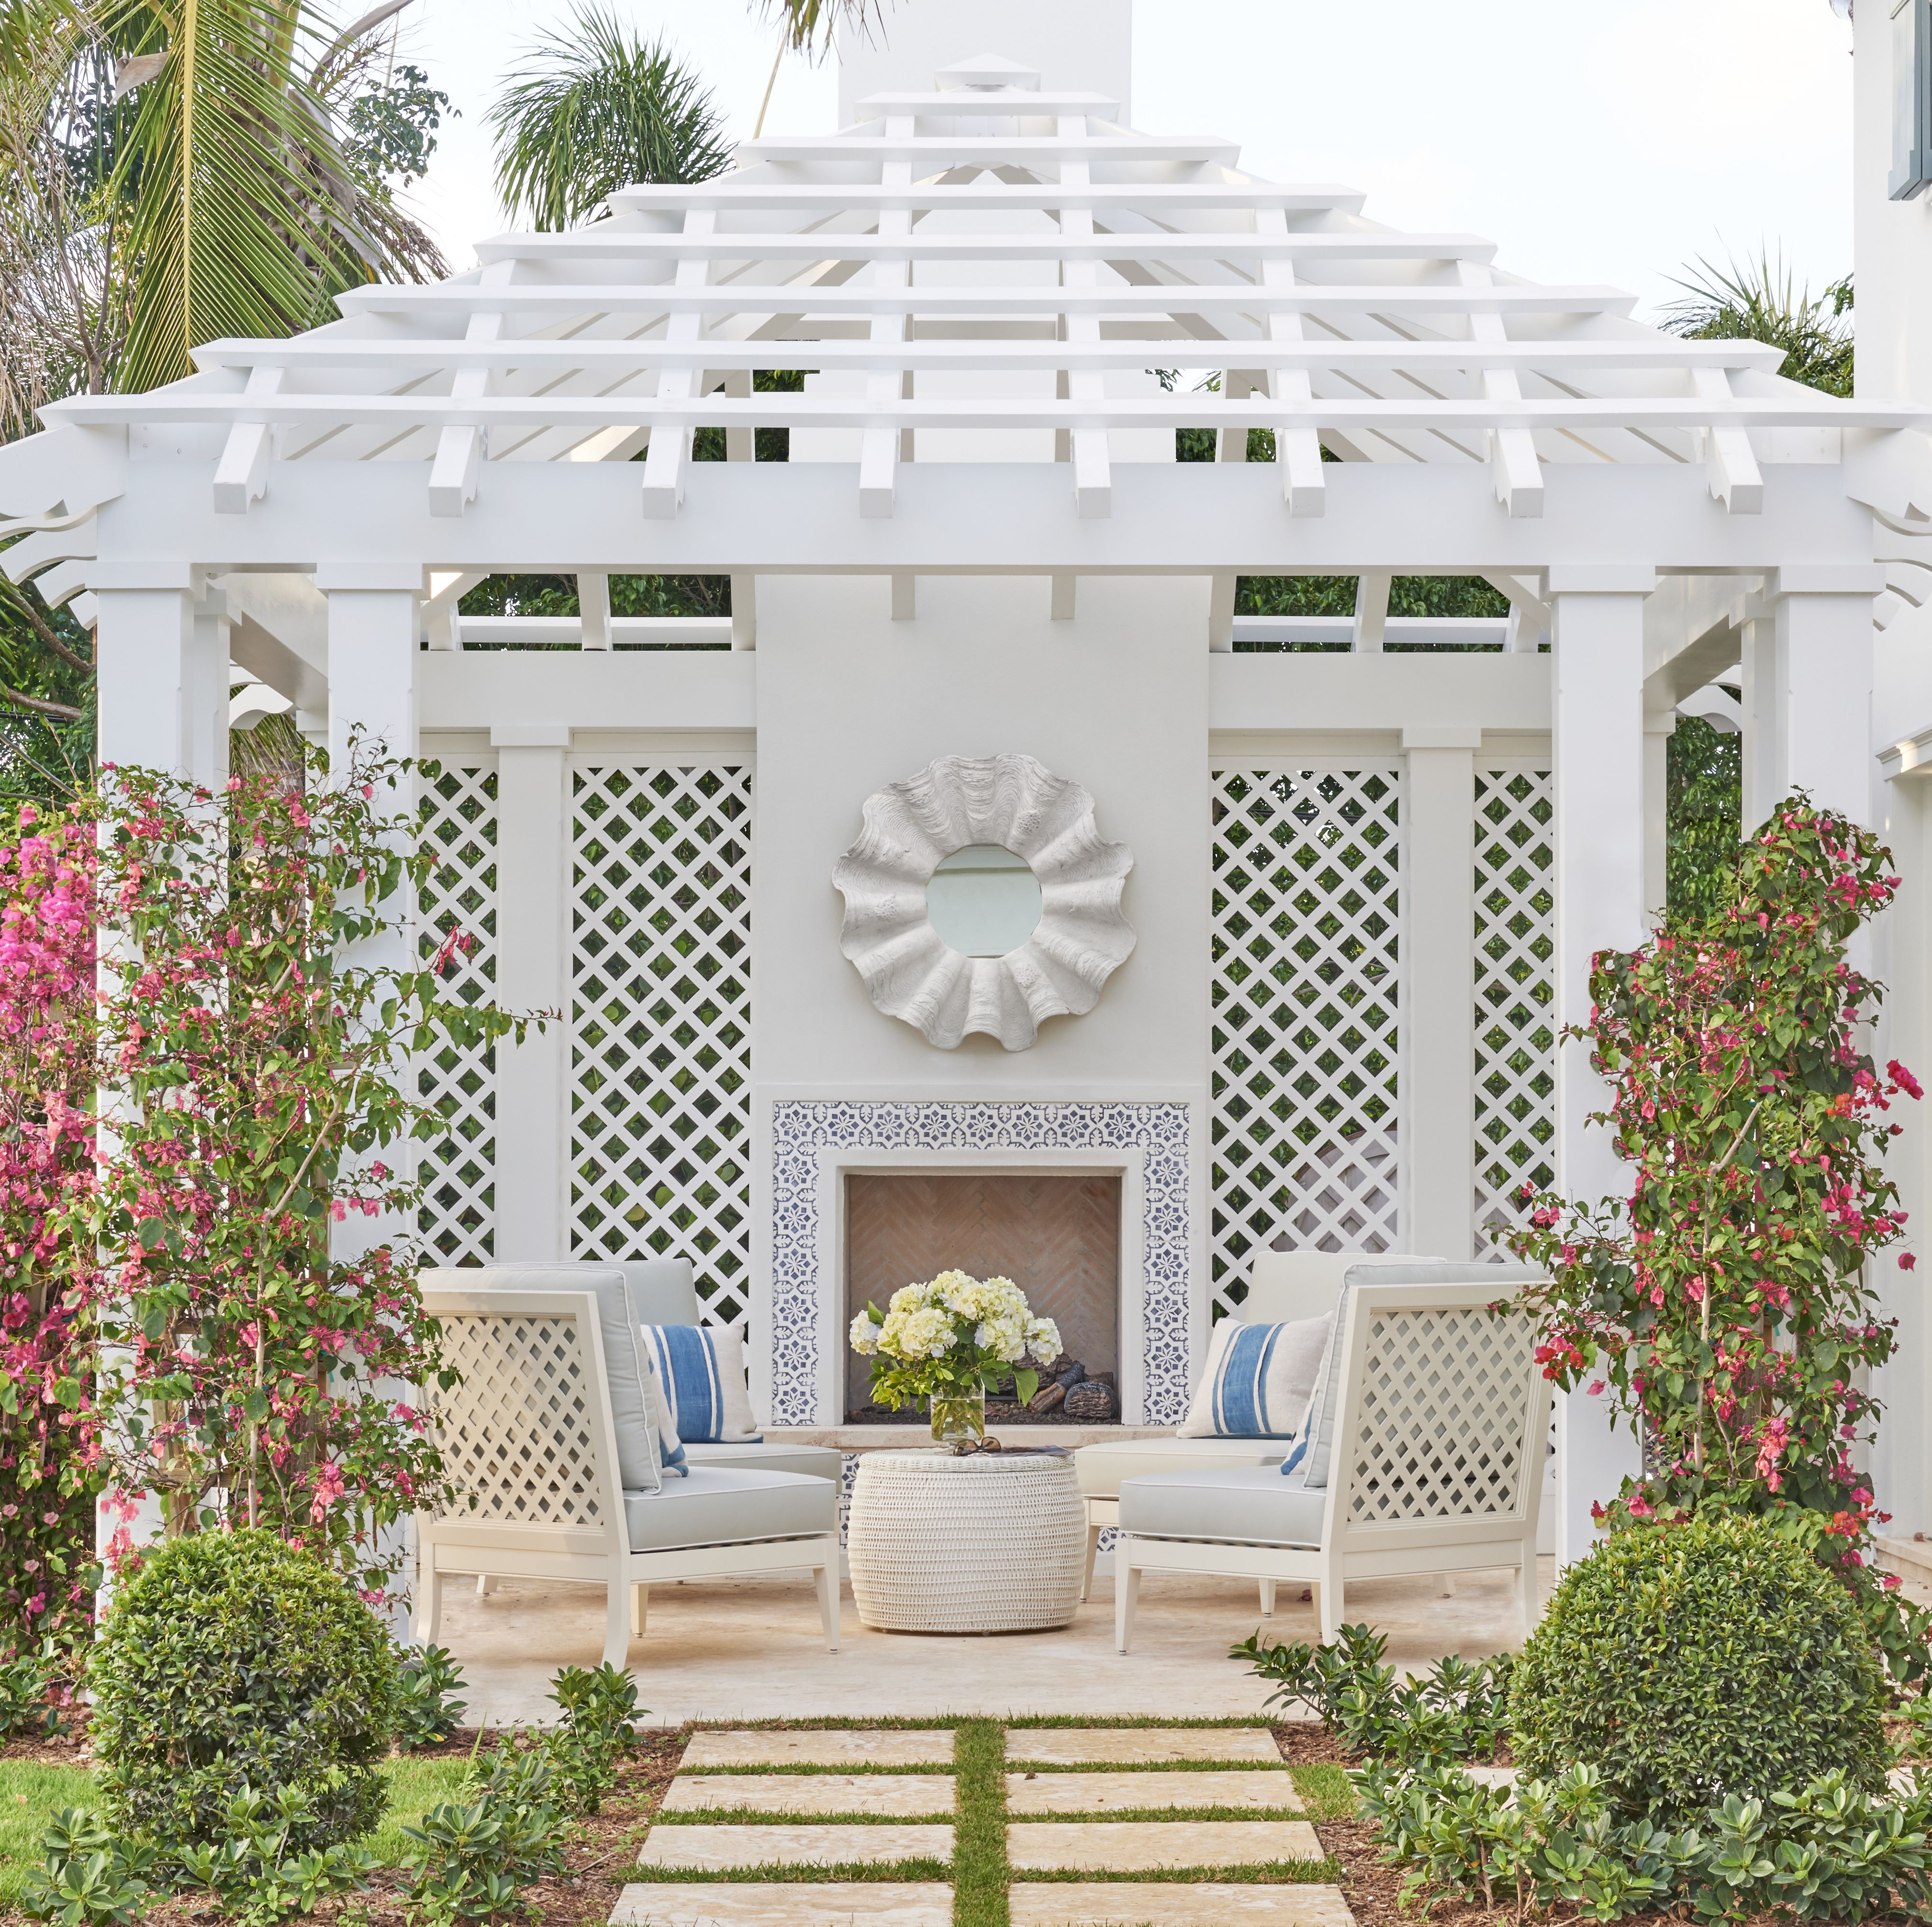 20 Designer Patio Ideas for A Summer Outside